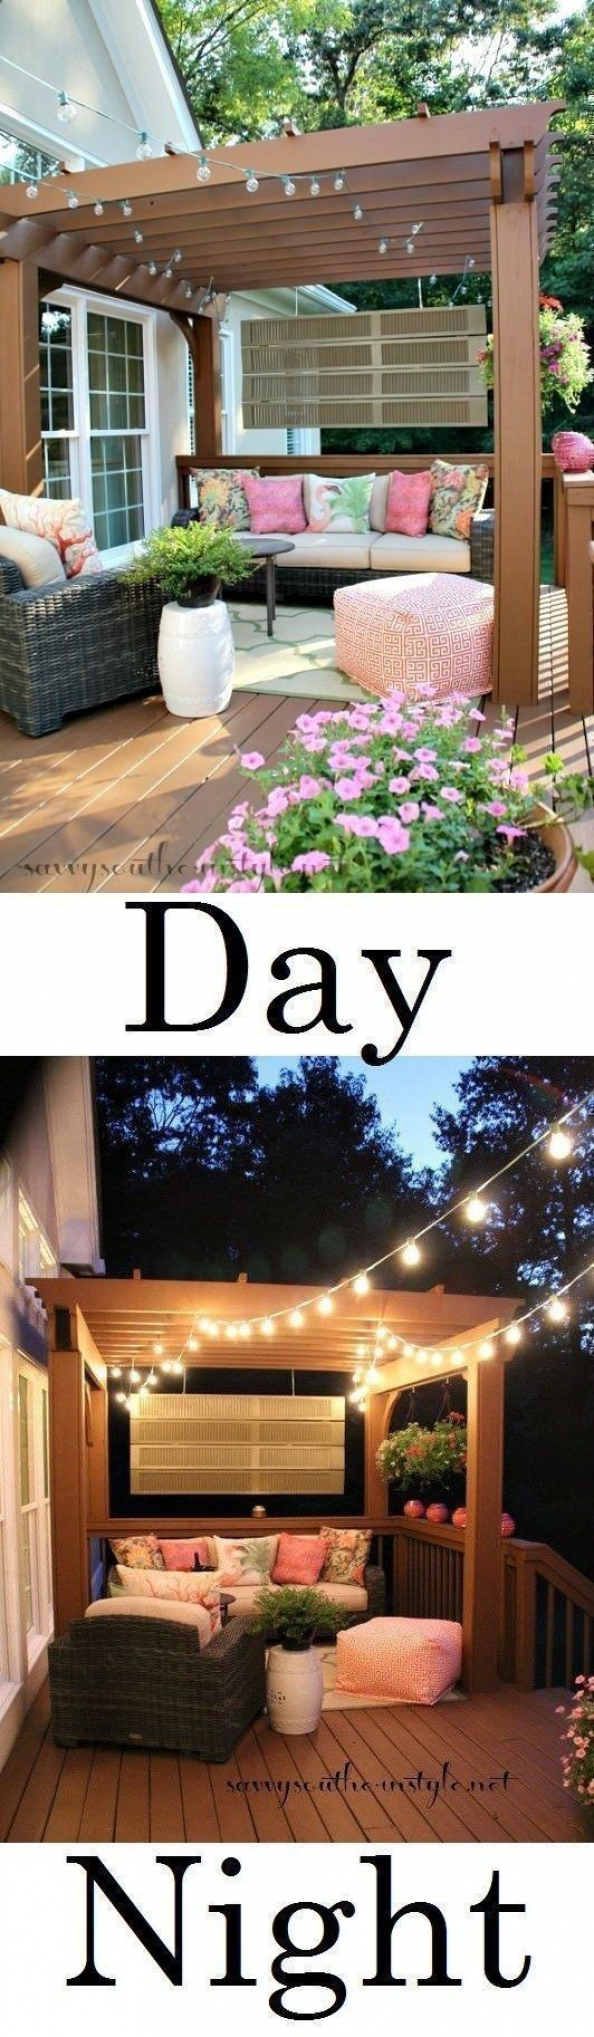 Shed DIY Ideas Landscaping Pool Grill On A Budget Patio ...